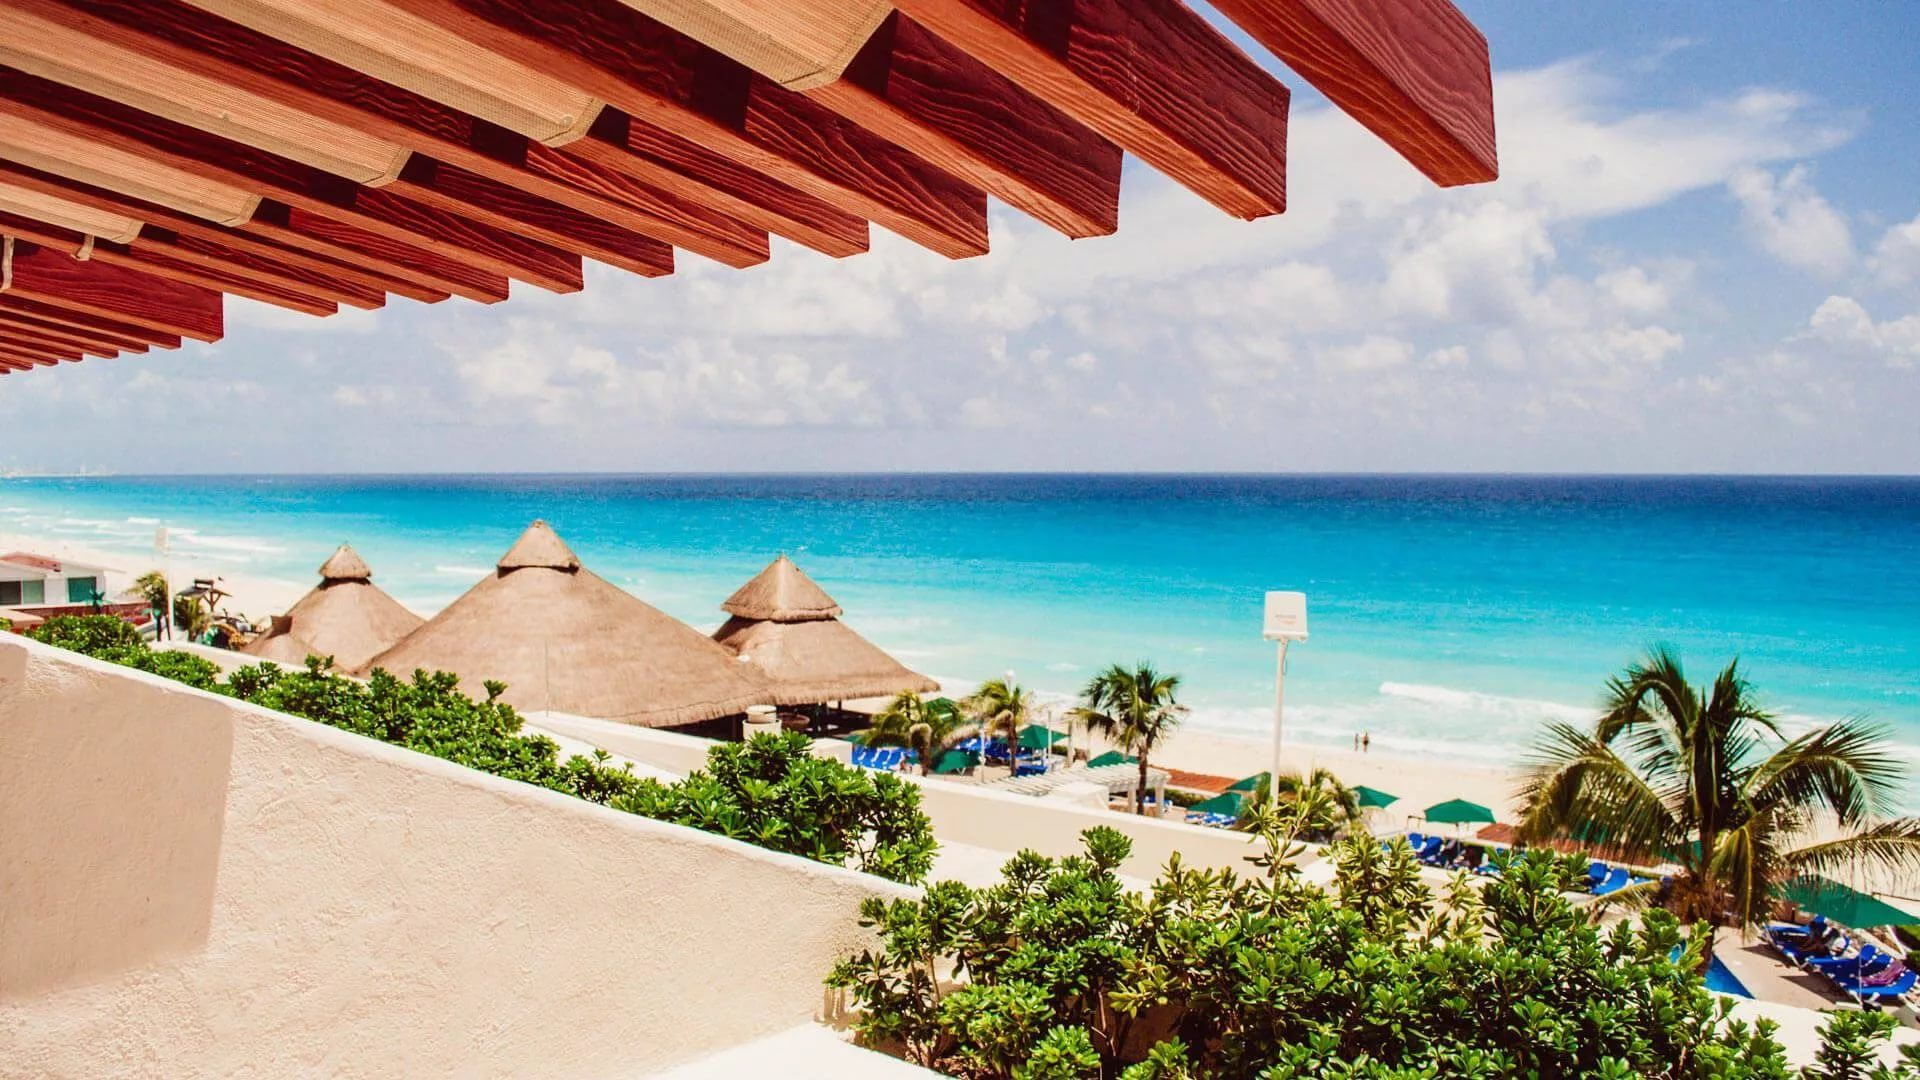 Cancun Mexico Download Wallpaper